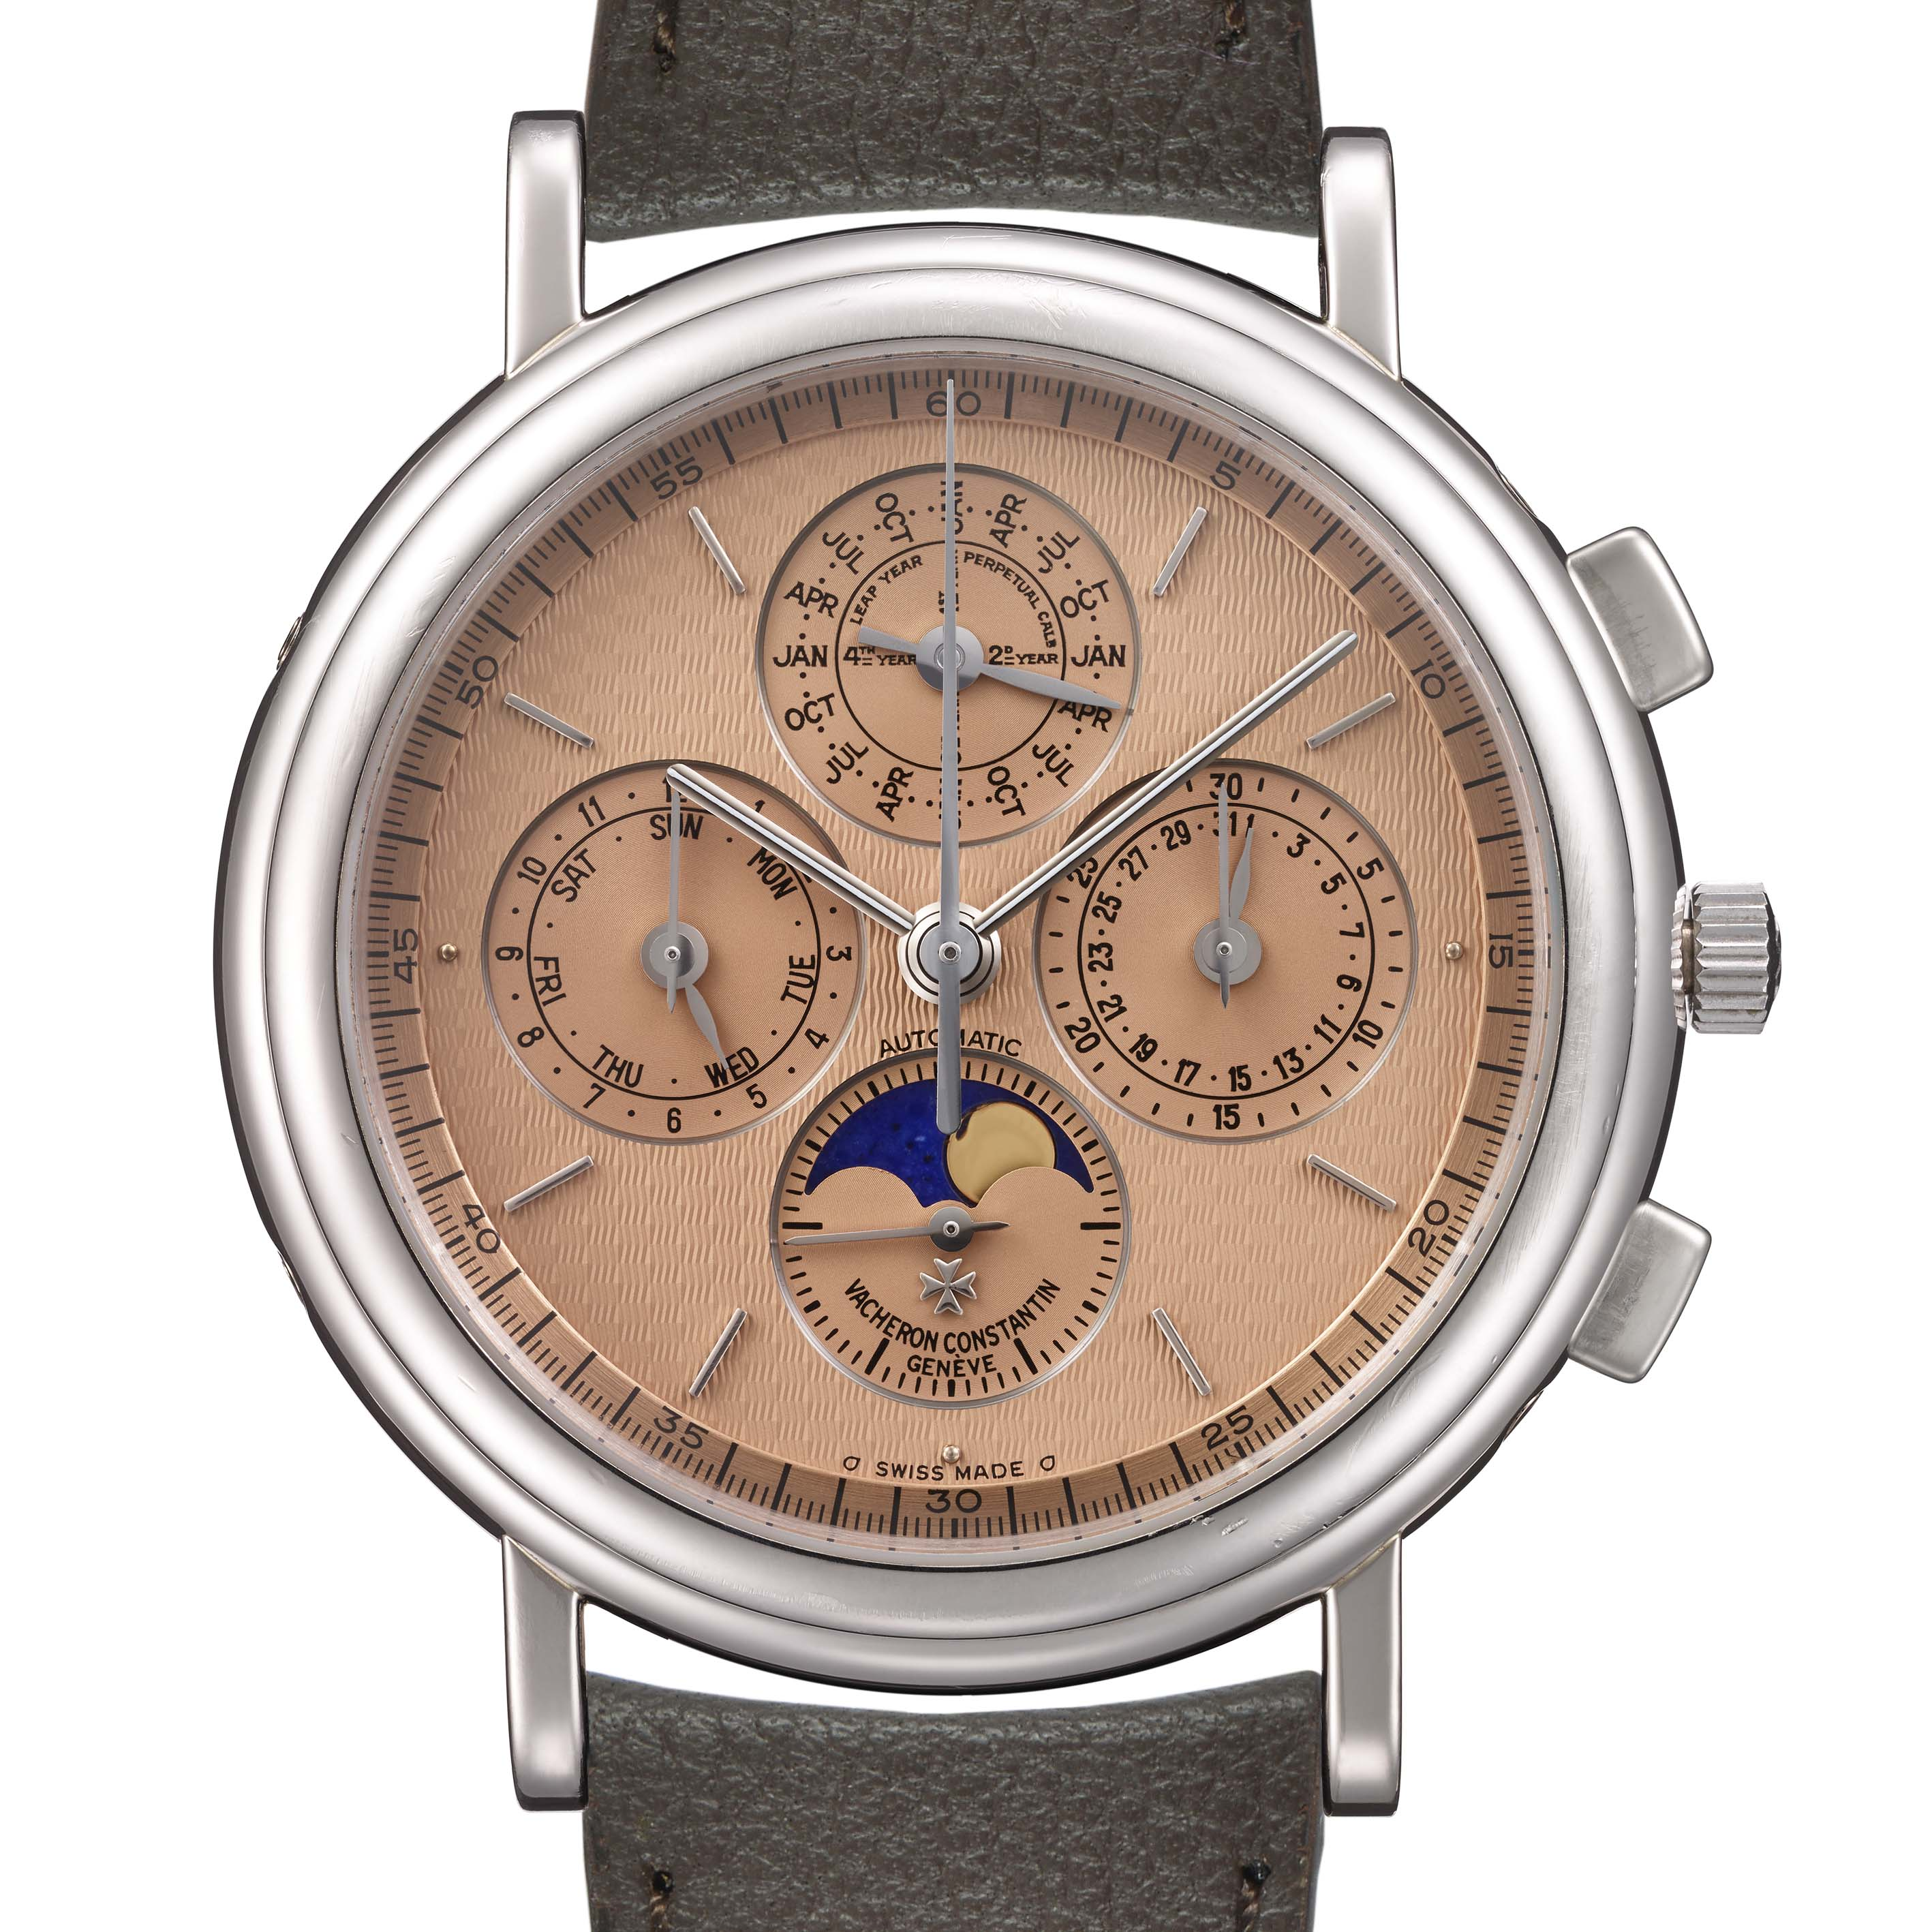 VACHERON CONSTANTIN | PLATINUM, CHRONOGRAPH, PERPETUAL CALENDAR WITH MOON-PHASES INDICATIONS, AUTOMATIC GENTLEMAN'S WRISTWATCH, REF 49005/000P